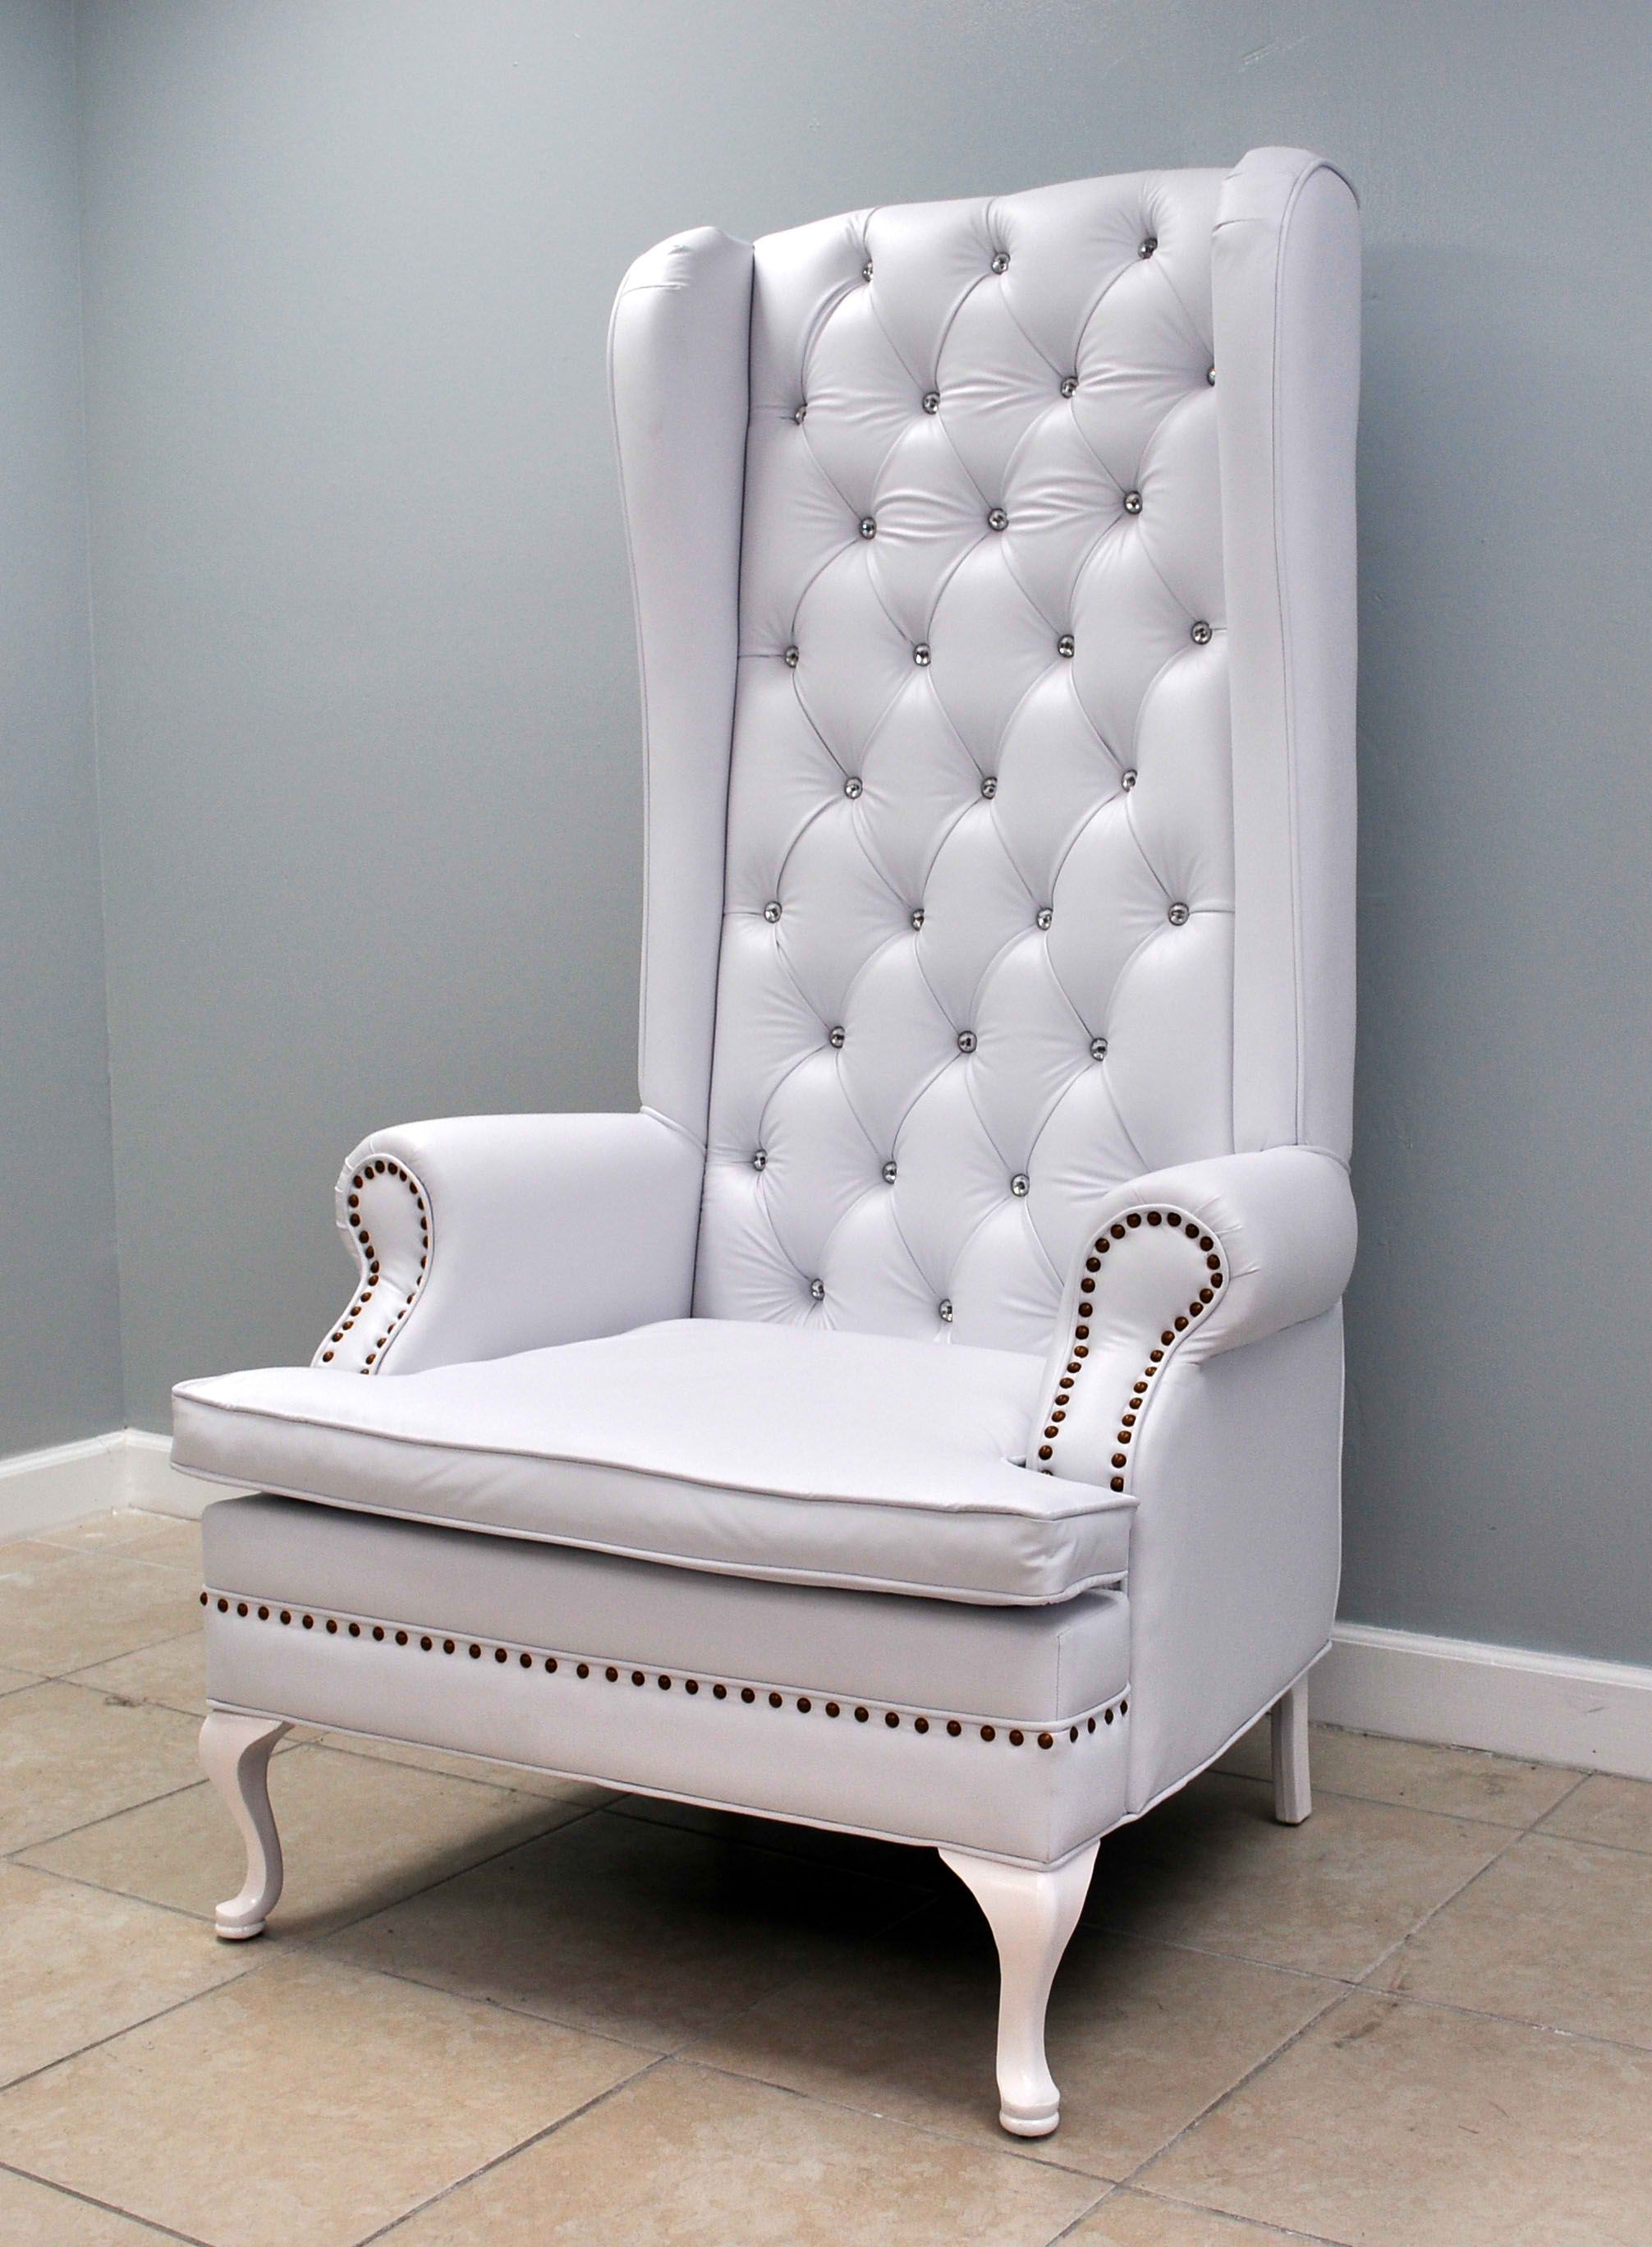 Chairman hire weathered oak white and beech cross back chairs - White Throne Chair